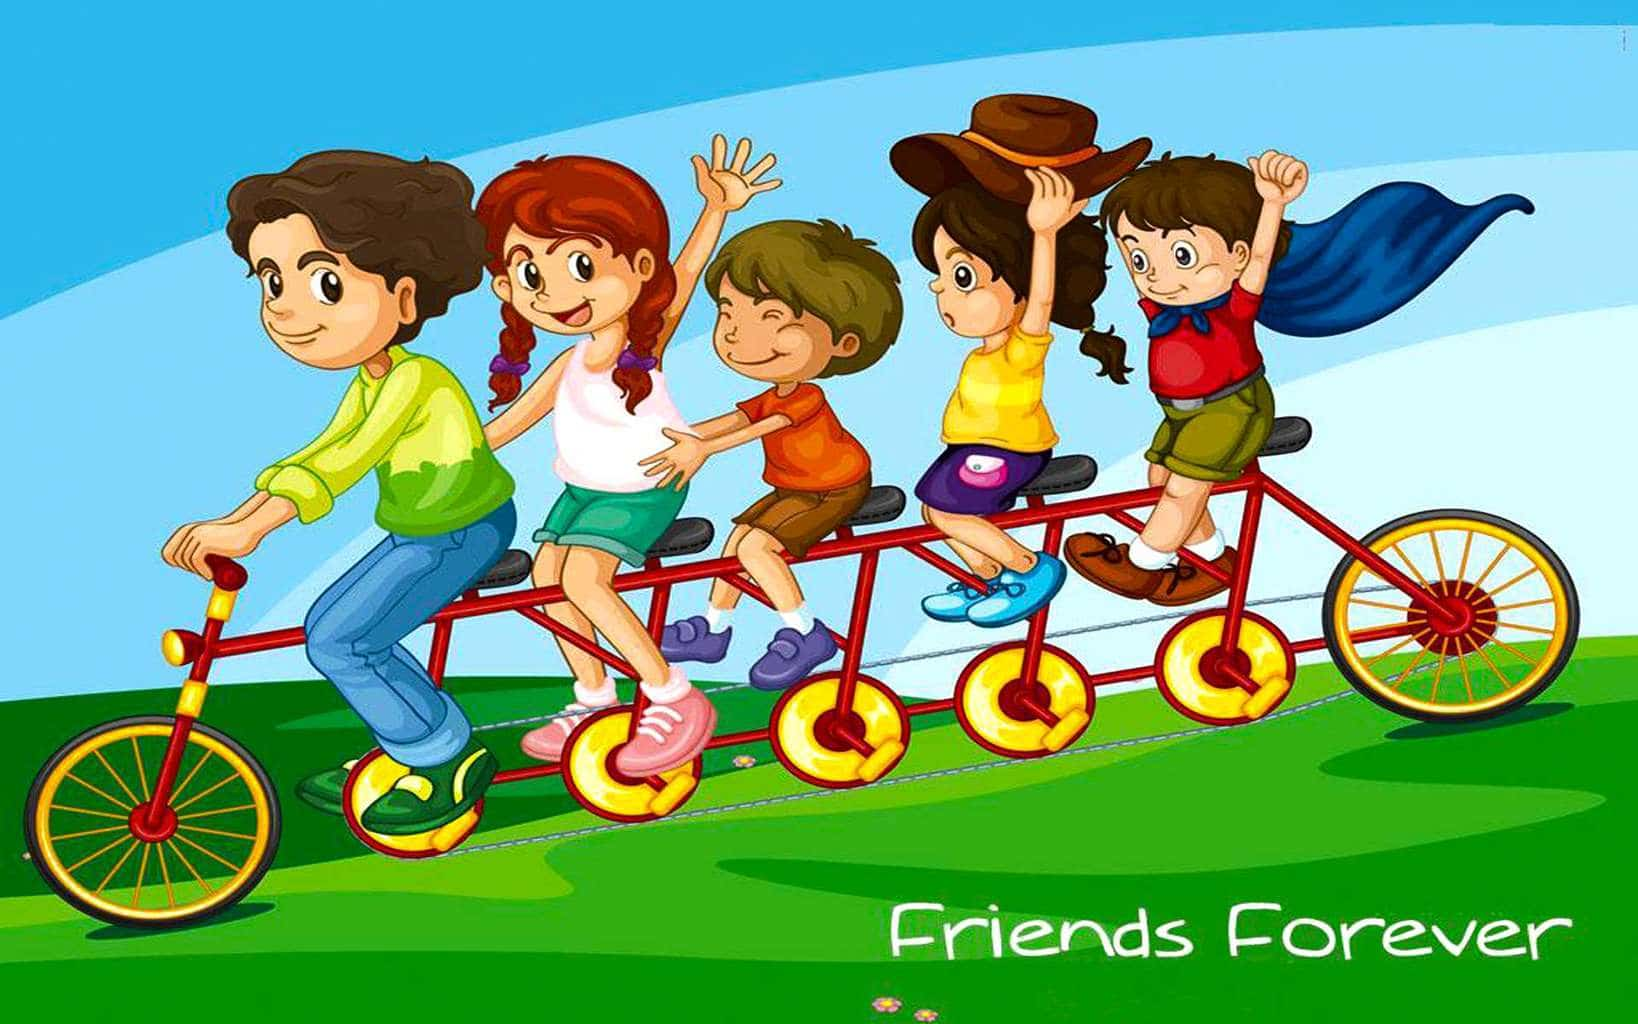 Wallpaper Boy And Girl Love Boy And Girl Best Friends Forever Backgrounds Hd